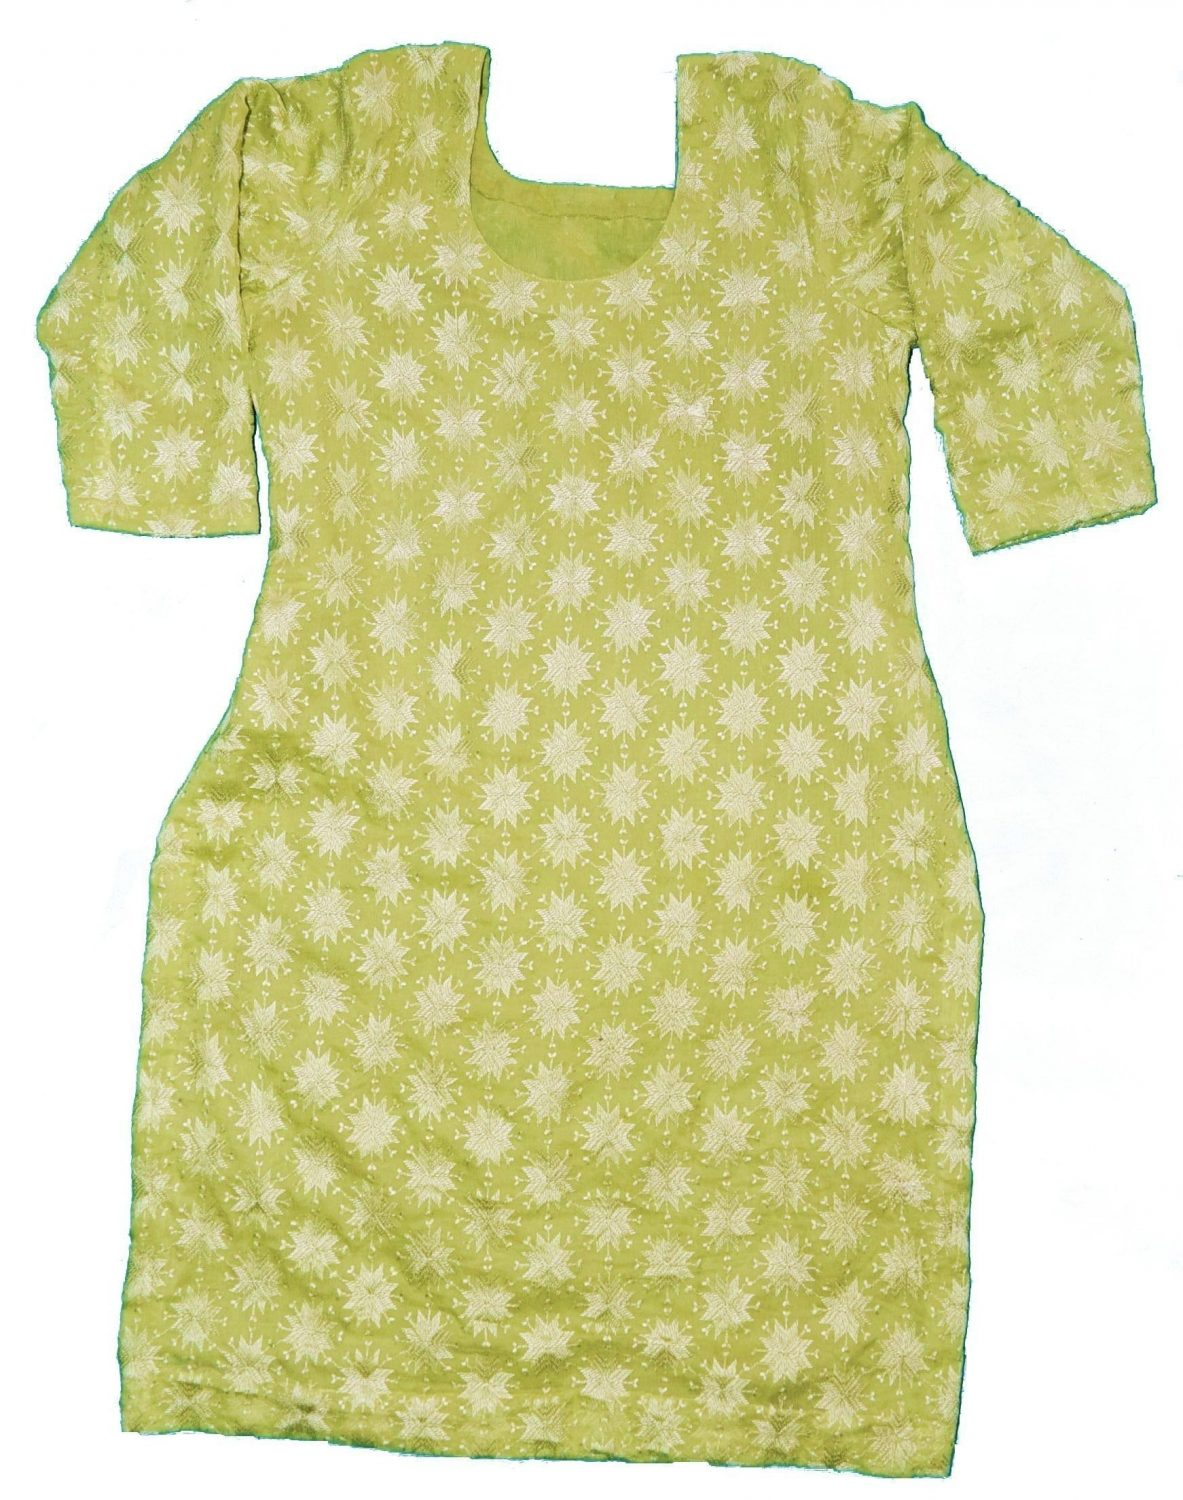 Self Embroidered Phulkari Kurti Custom Stitched - All Colours/Sizes Available 4